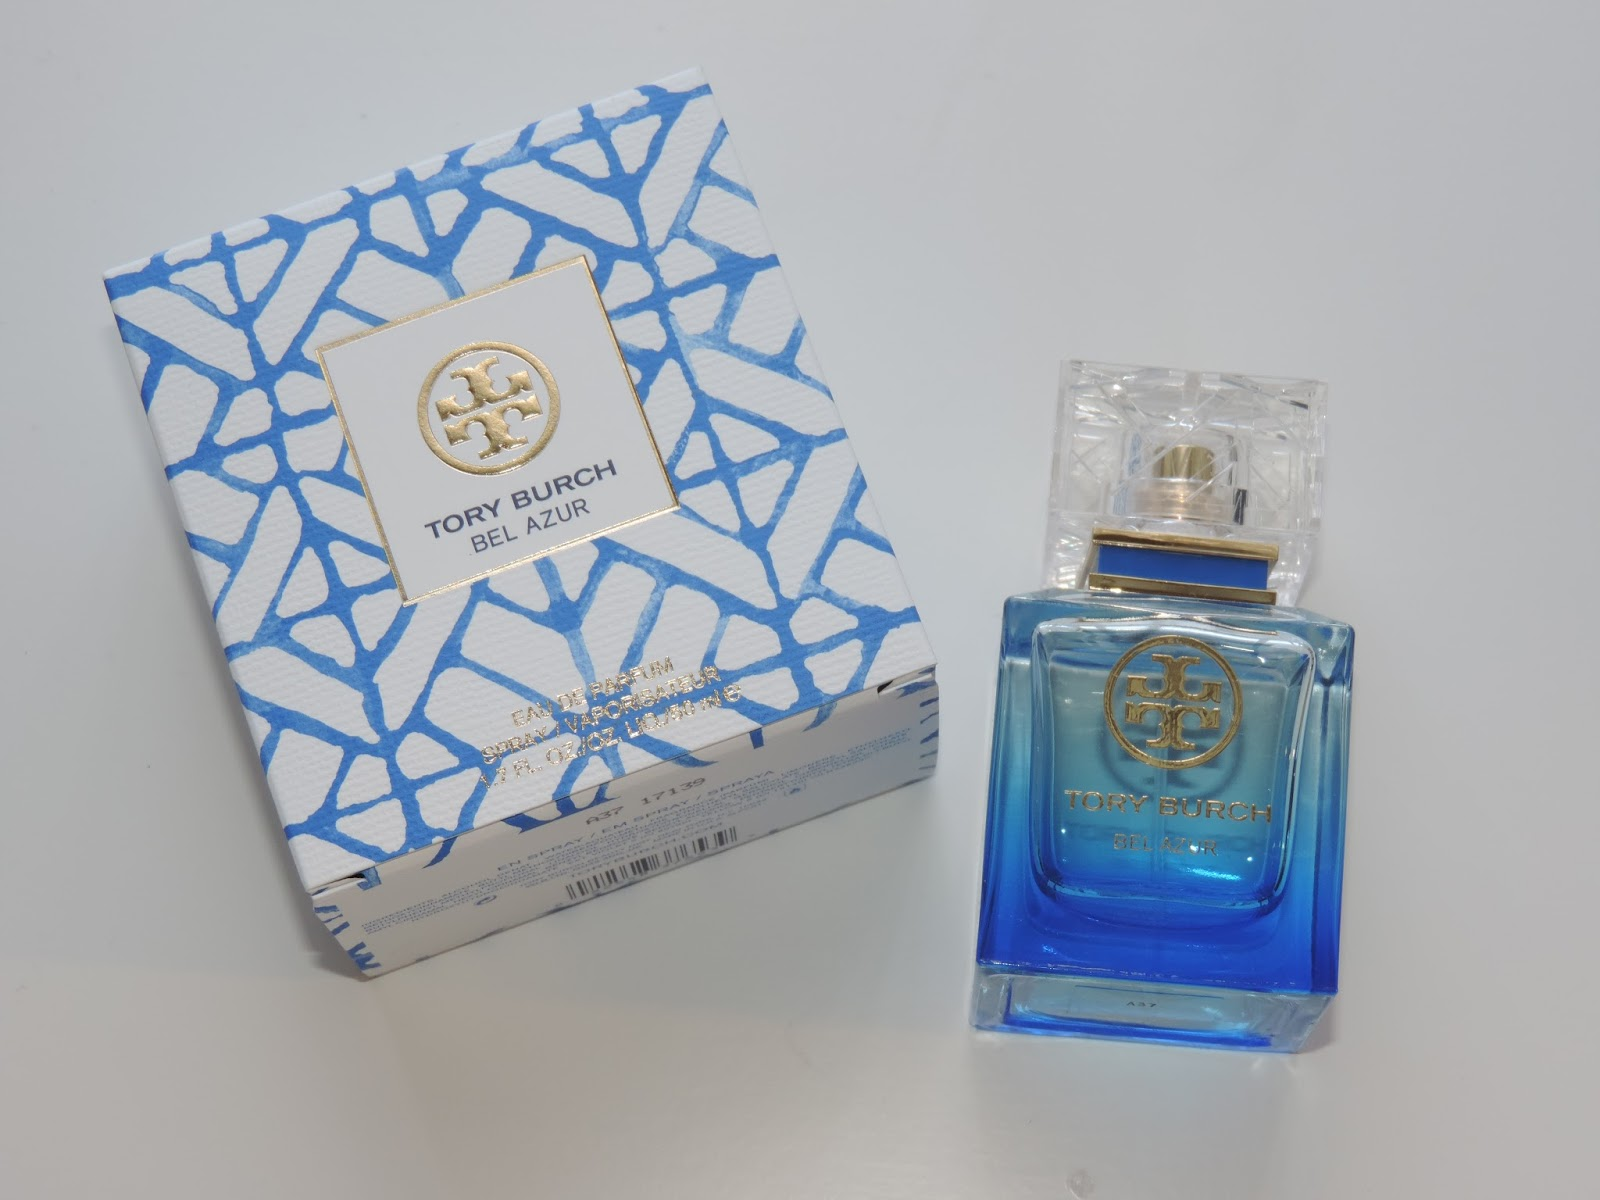 2934ab356d I have a lot of perfumes in my collection but always seem to use the same  one everyday (usually Cerutti 1881 which I've worn for years).